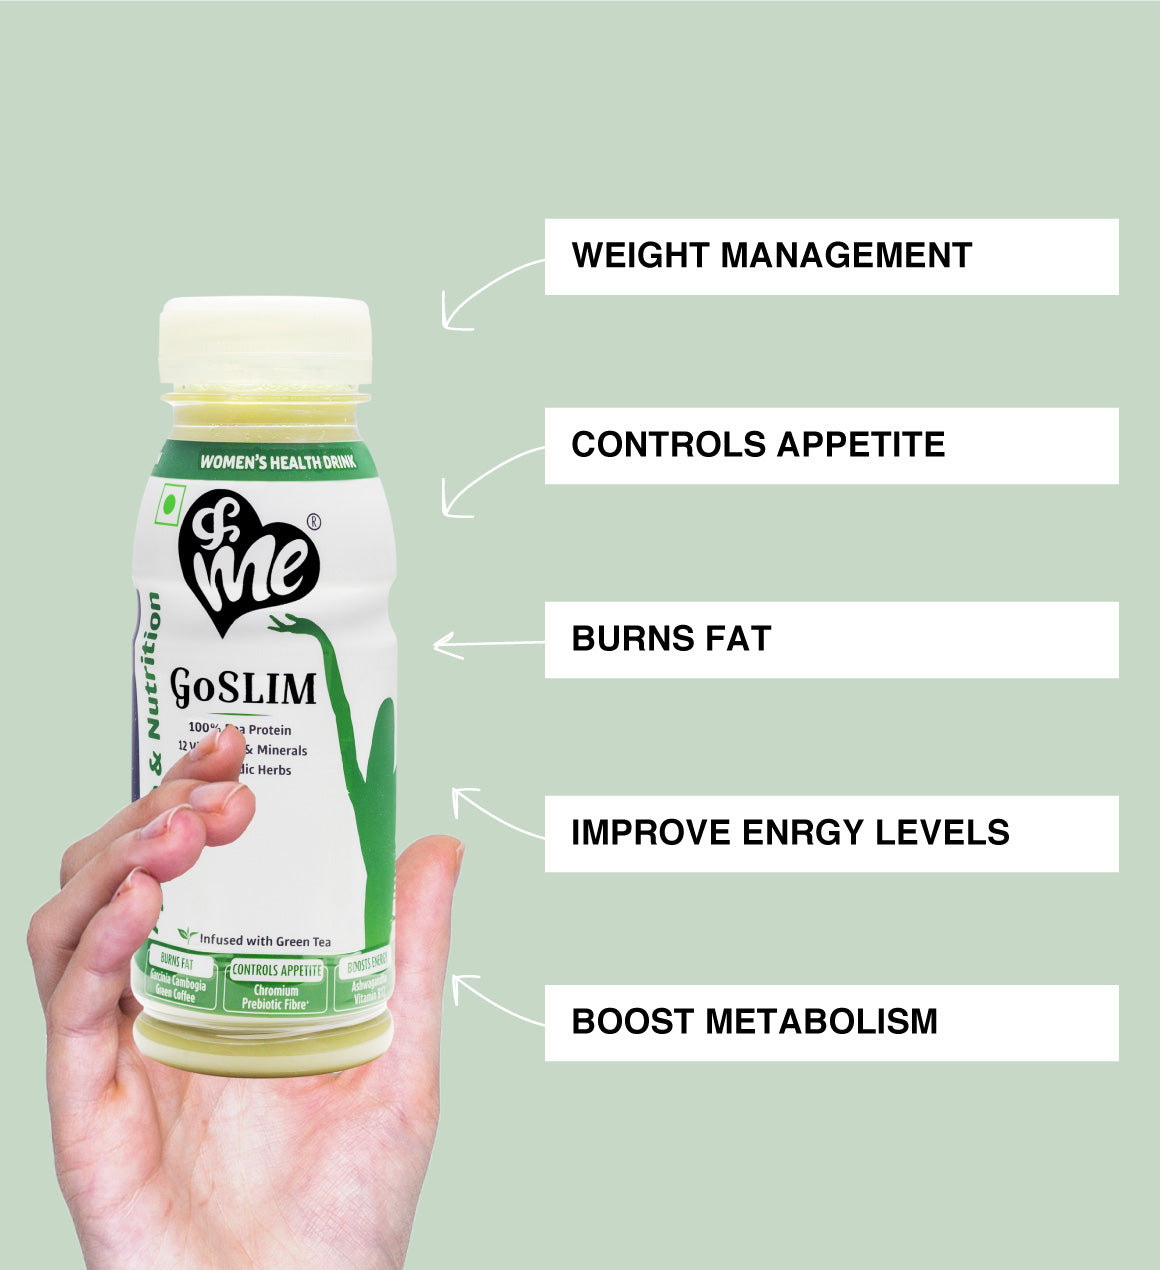 &Me Golim drink helps in weight control, fat loss